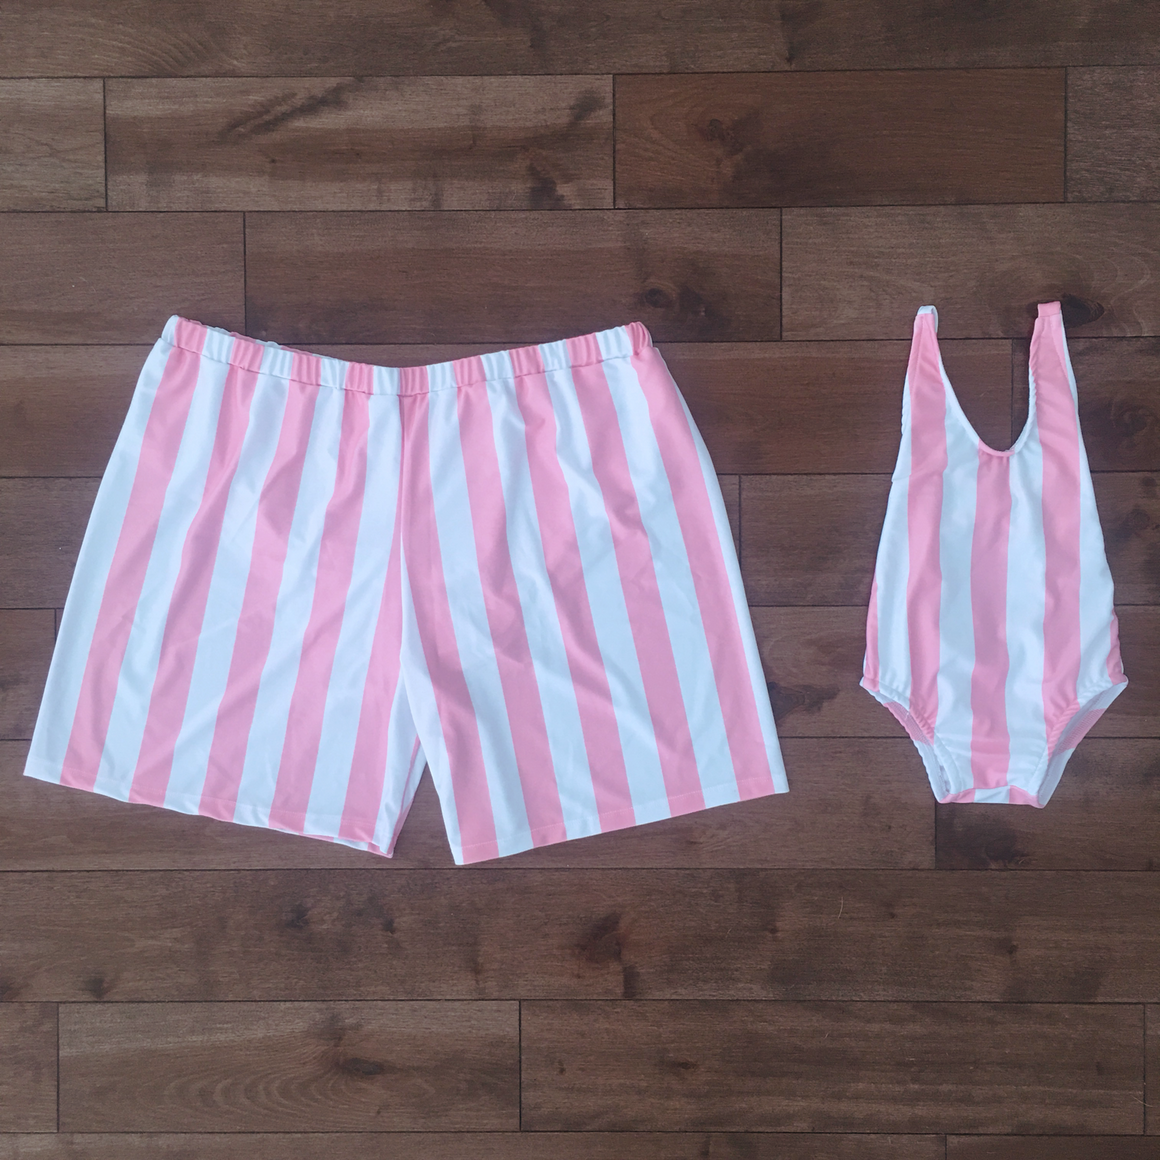 matching swimsuit for daddy and son